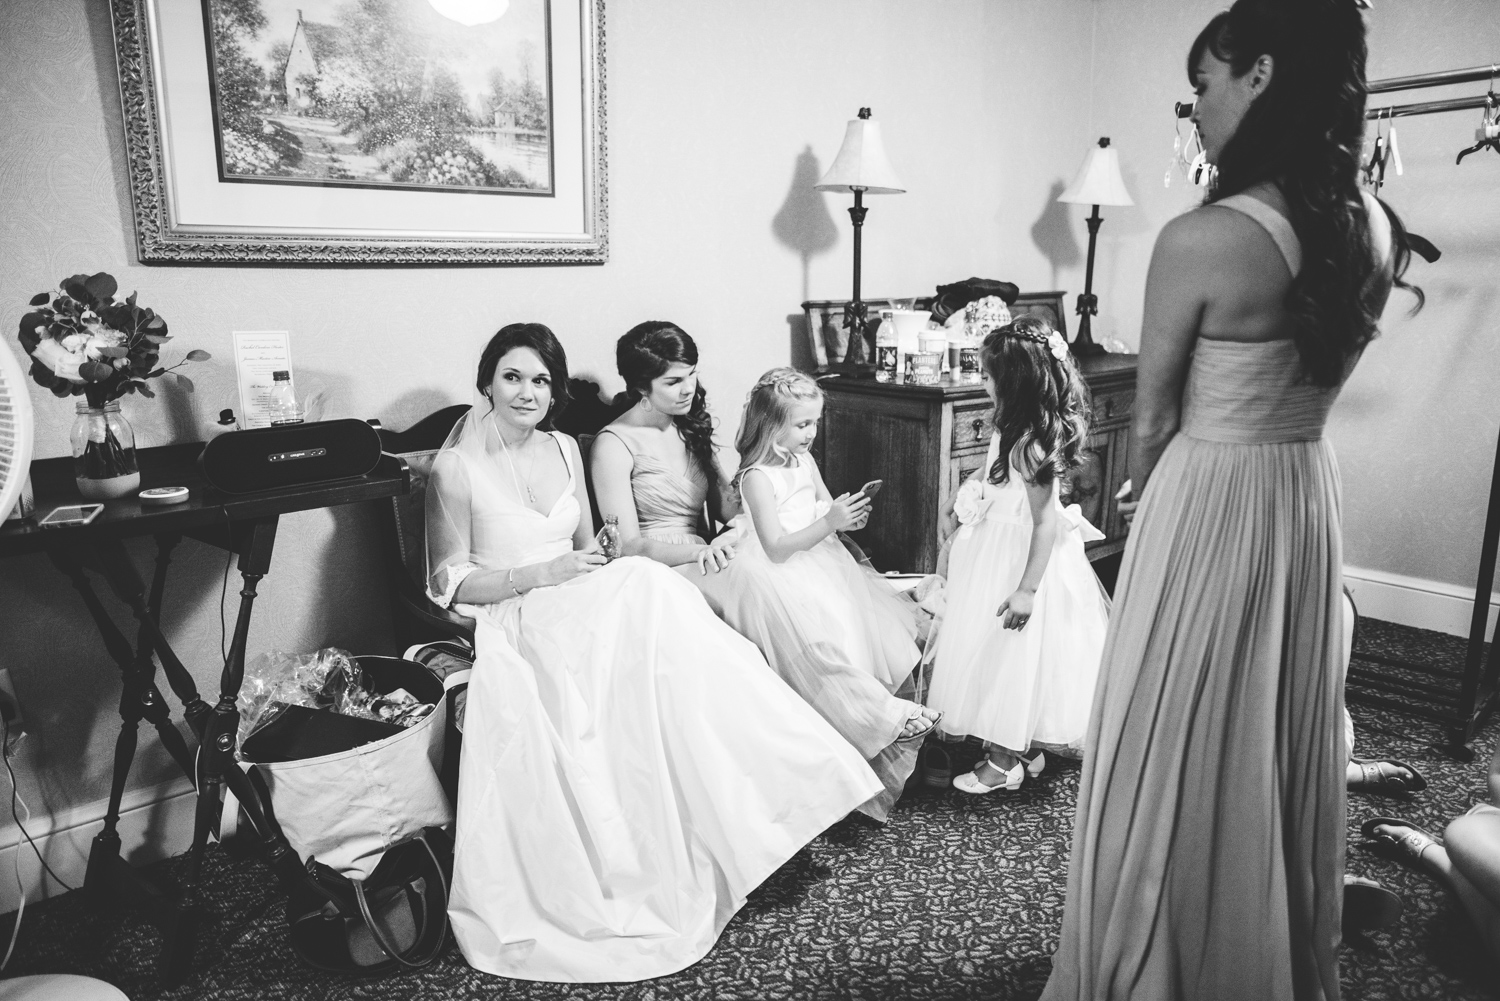 015 - bride waits in the green room before the wedding ceremony.jpg